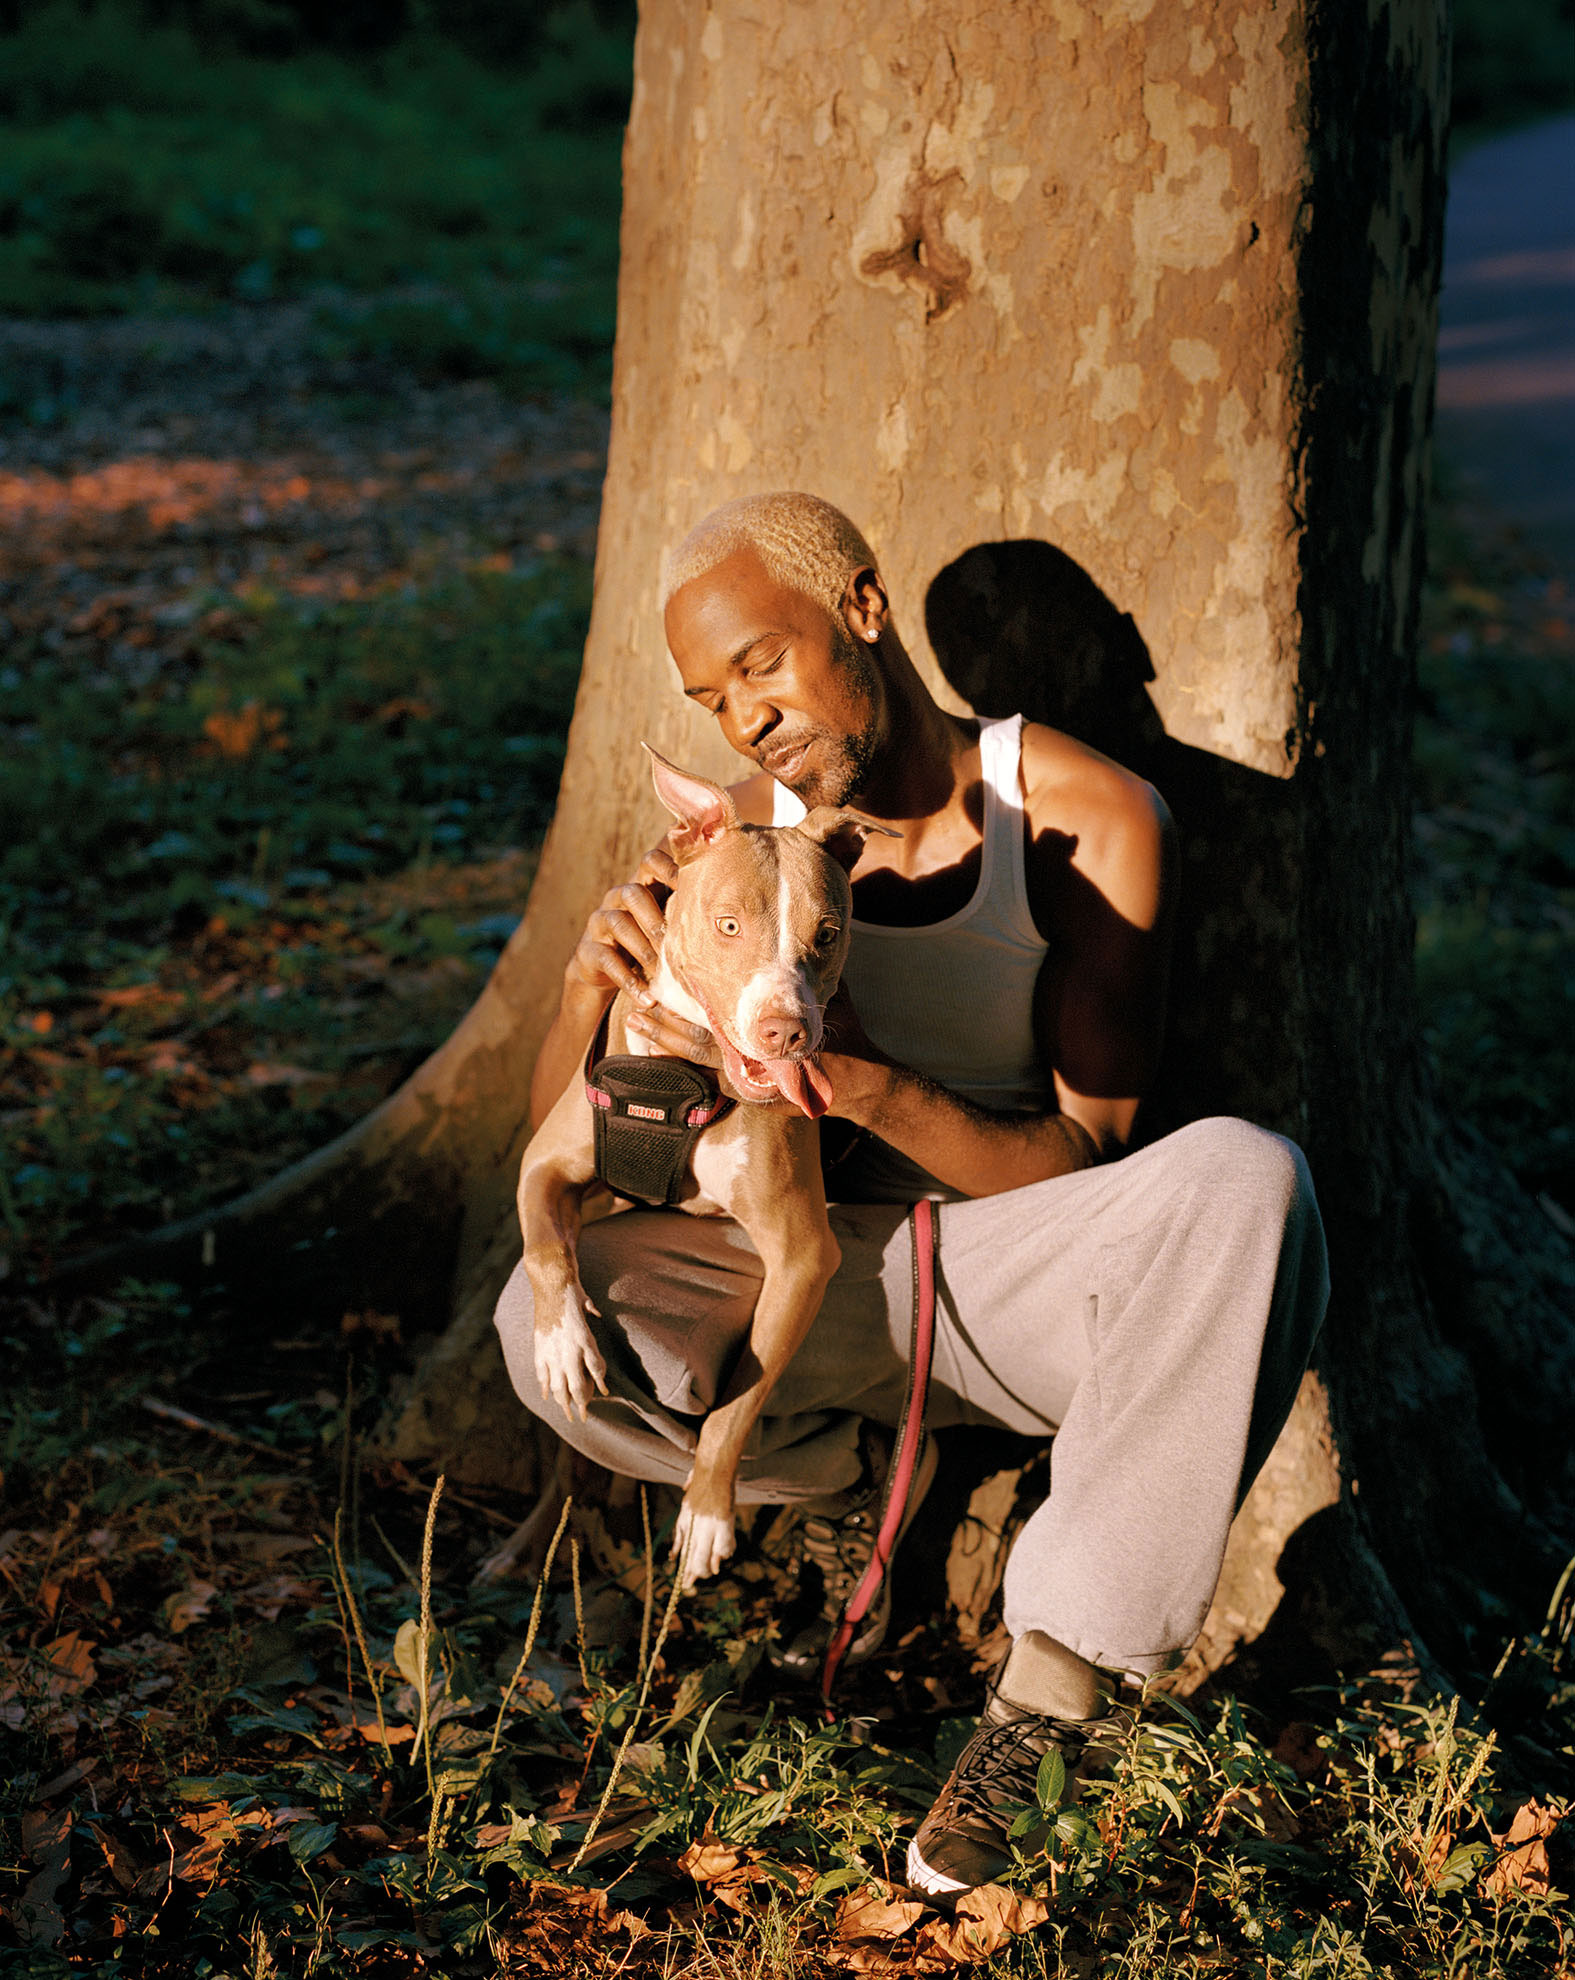 African American man with bleached hair holds a pit bull leaning against a tree, in direct sunlight